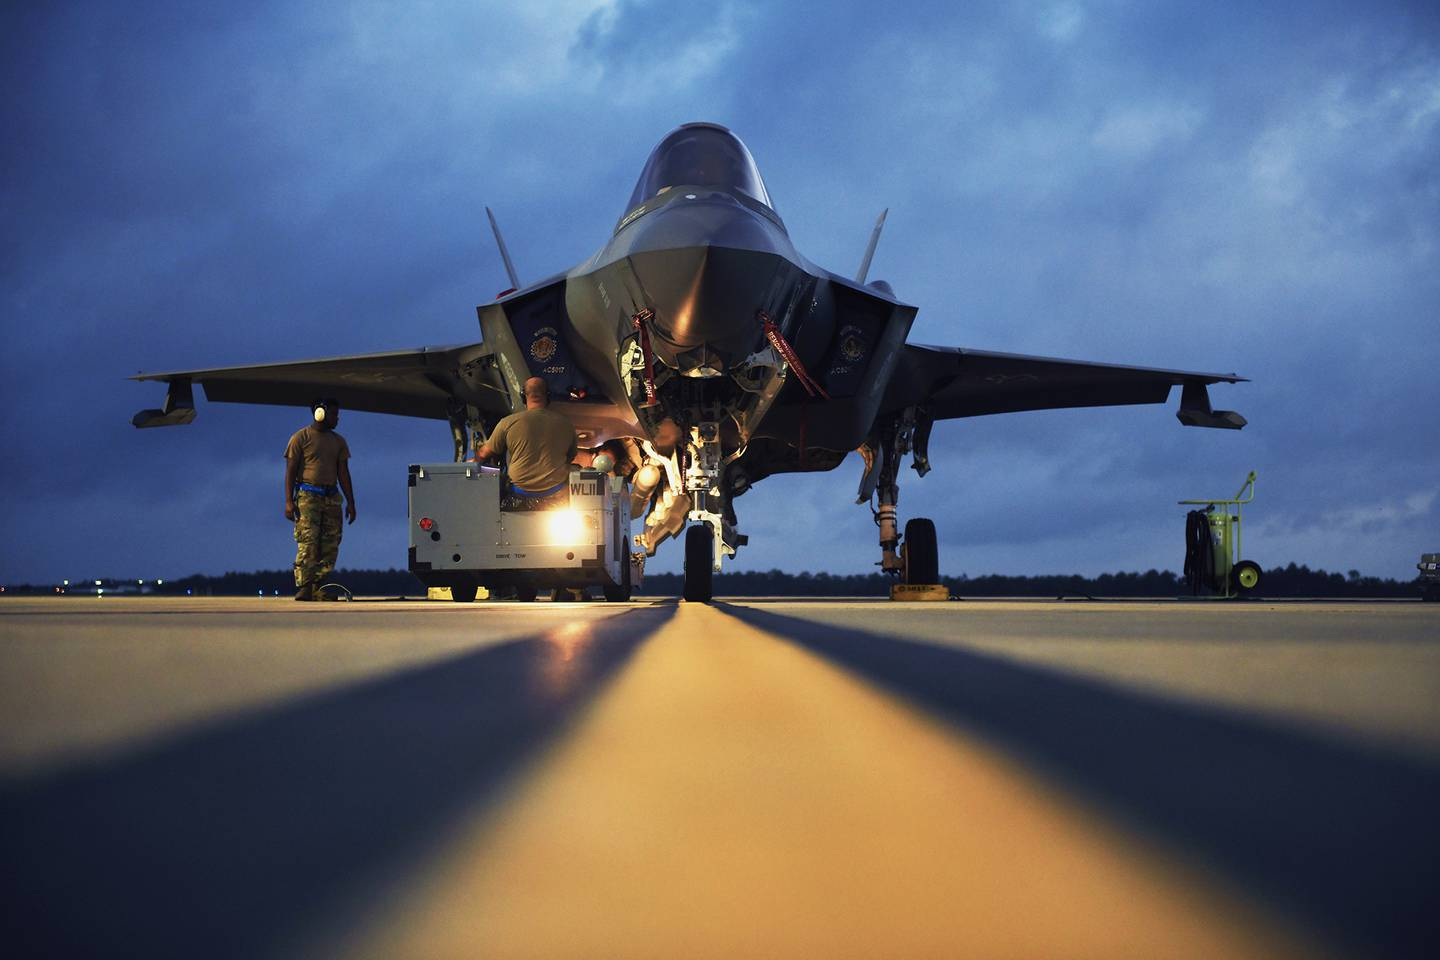 U.S. Air Force weapons load crew members load an AIM-120 advanced medium-range air-to-air missile on an F-35 Lightning II during Exercise Combat Archer at Eglin Air Force Base, Fla., June 10, 2020